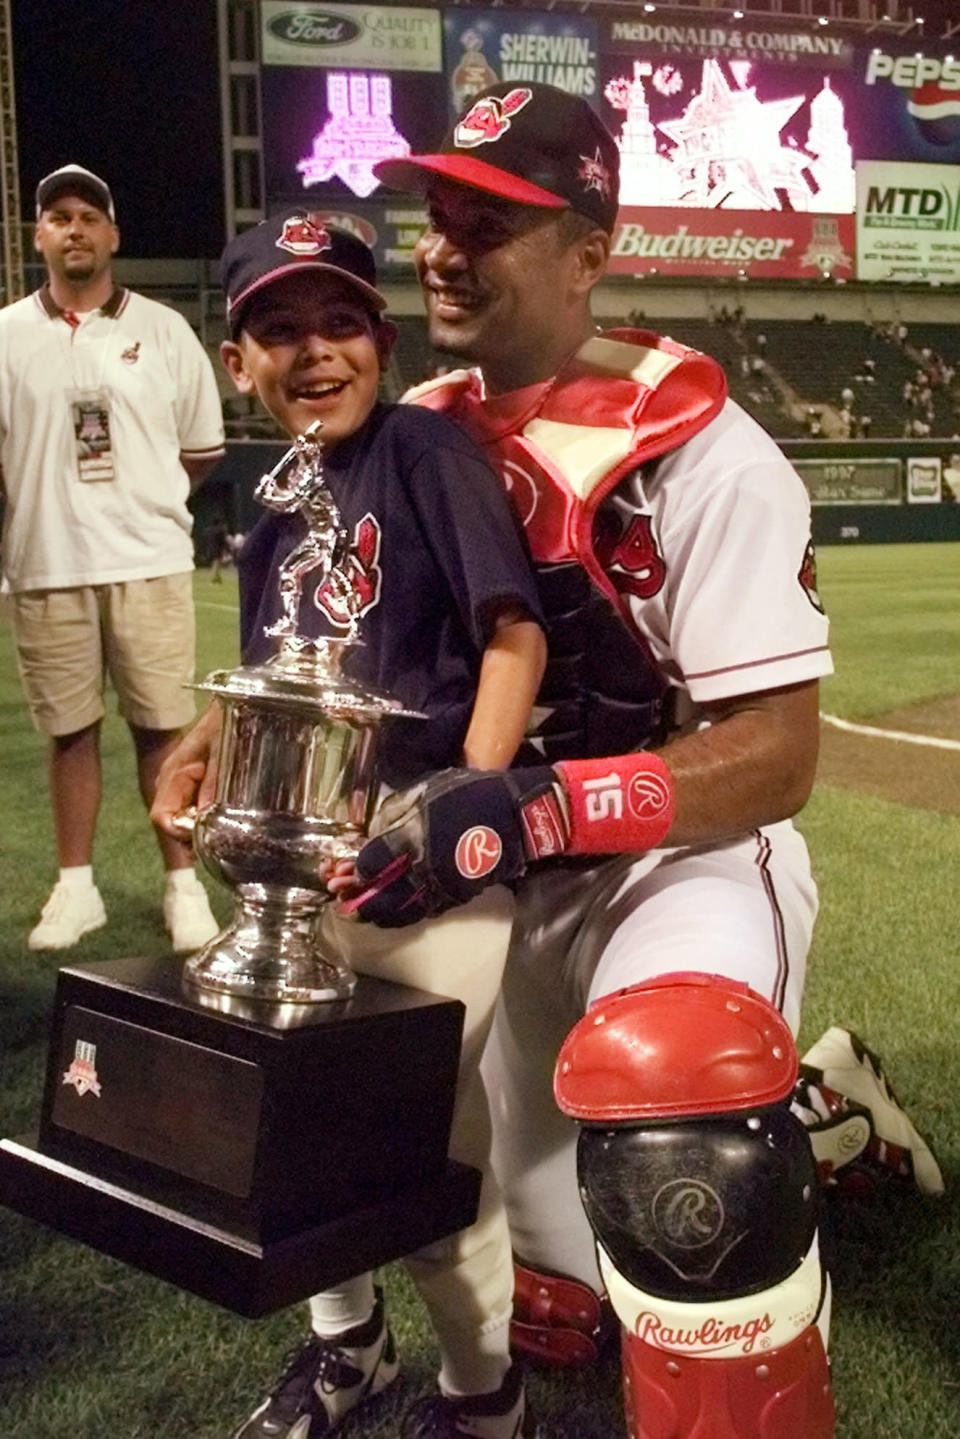 FILE - In this July 8, 1997, file photo, Cleveland Indians' Sandy Alomar shows off his MVP trophy with his son, Marcus, after the All-Star baseball game in Cleveland. With the game tied 1-1 in the seventh inning, Alomar, who had overcome serious knee issues that had threatened to derail his career, connected for a two-run homer that sent the crowd of 44,916 in perpetually sold-out Jacobs Field into delirium and pushed the AL to a 3-1 win. And while the home run was special for Alomar, his most vivid memory of that July night came after the game. (AP Photo/Beth A. Keiser, File)